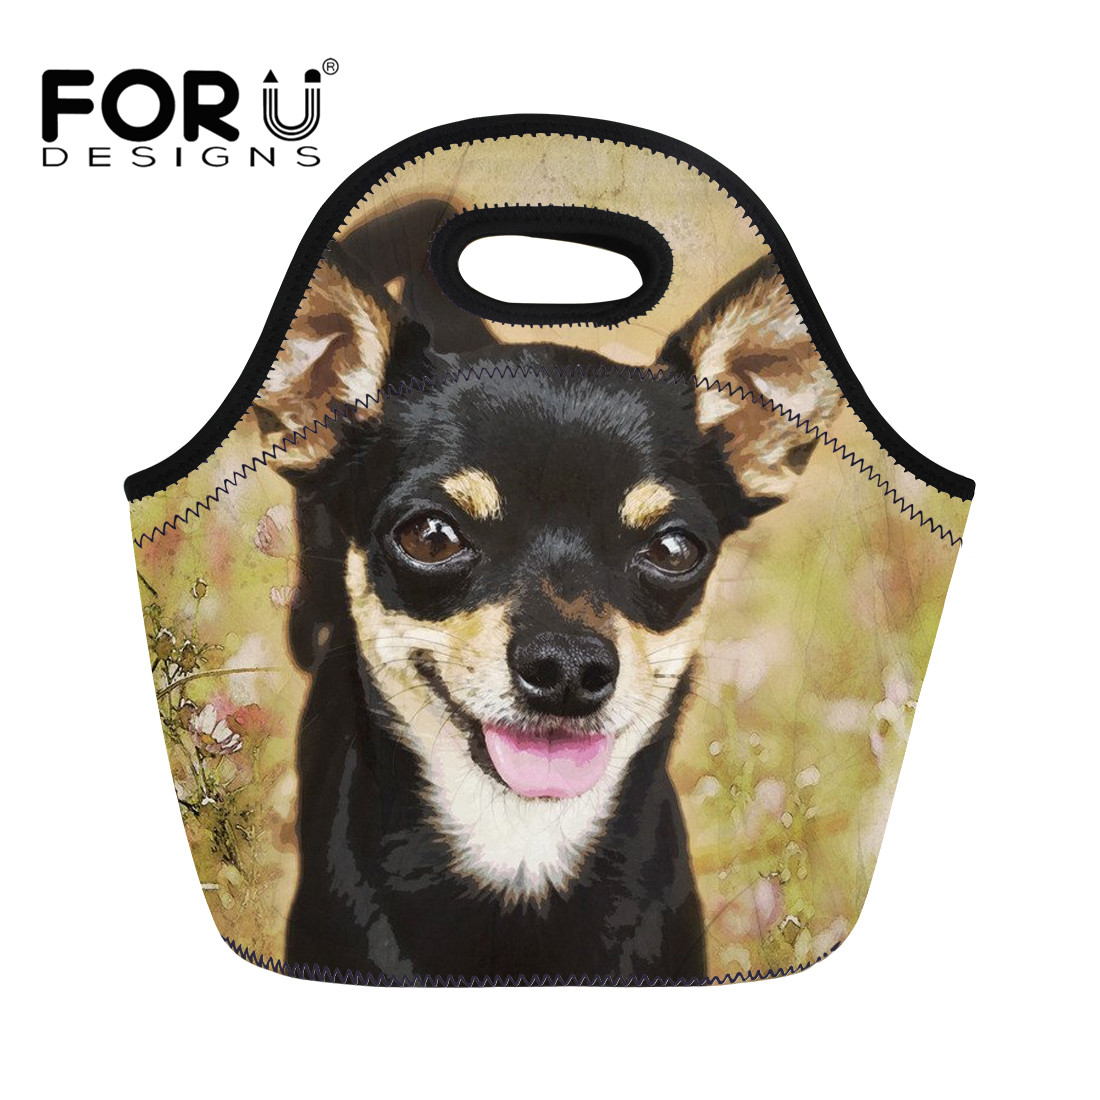 FORUDESIGNS 2018 Neoprene Waterproof Lunch Bag Food Storage Bag Chihuahua Print Women Kids Baby Casual Food Container Carry Tote